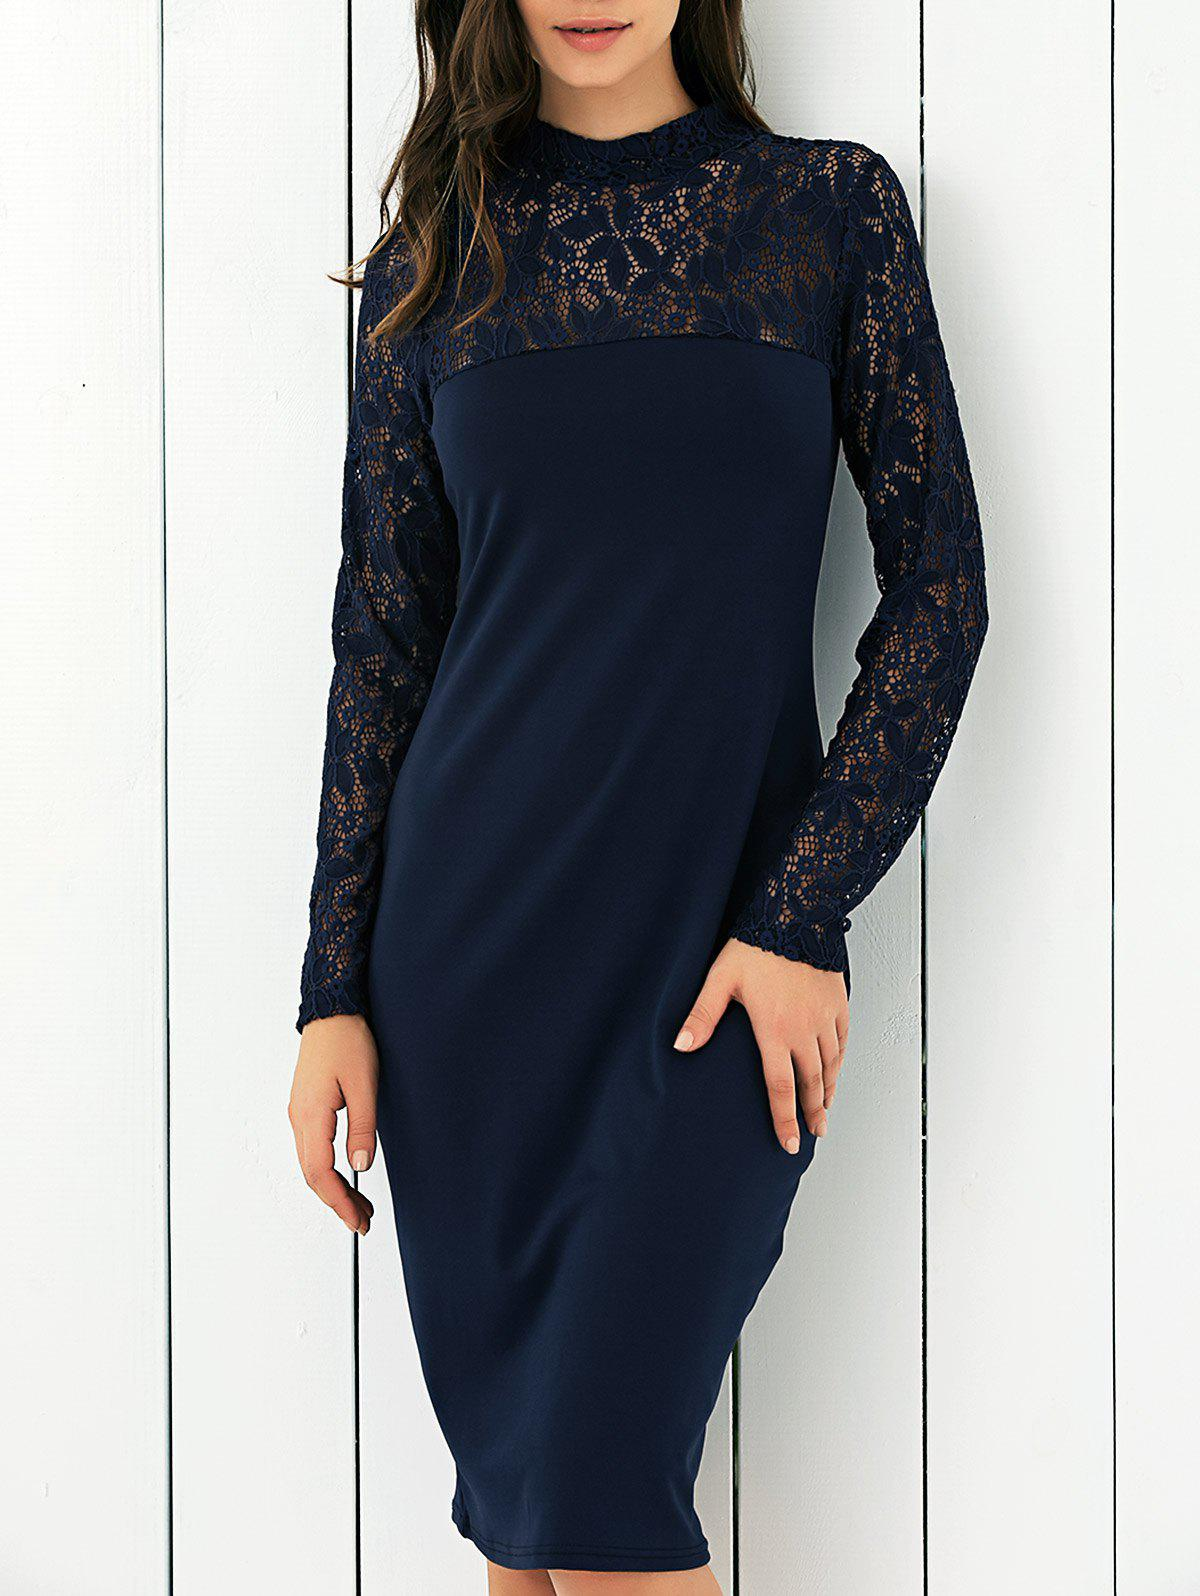 Lace Cutwork Patched Club Dress